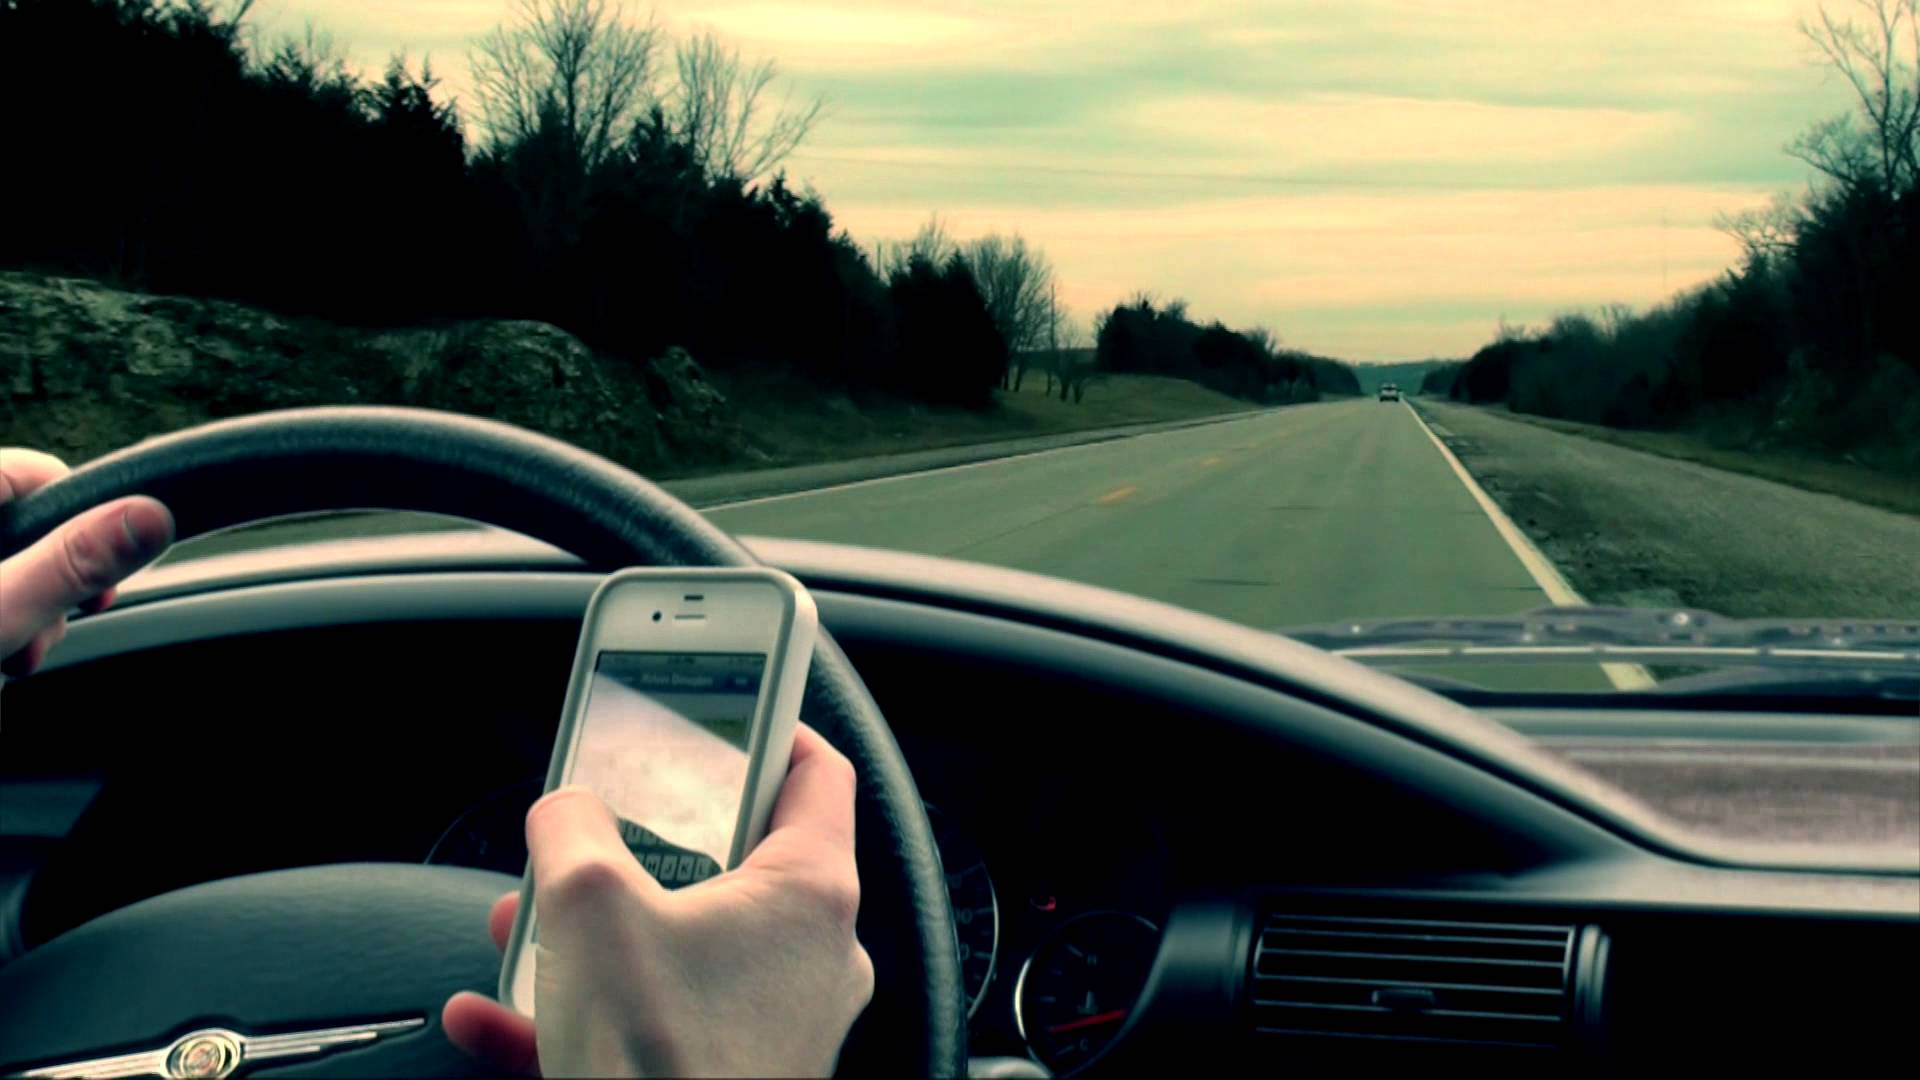 Texting and driving research paper